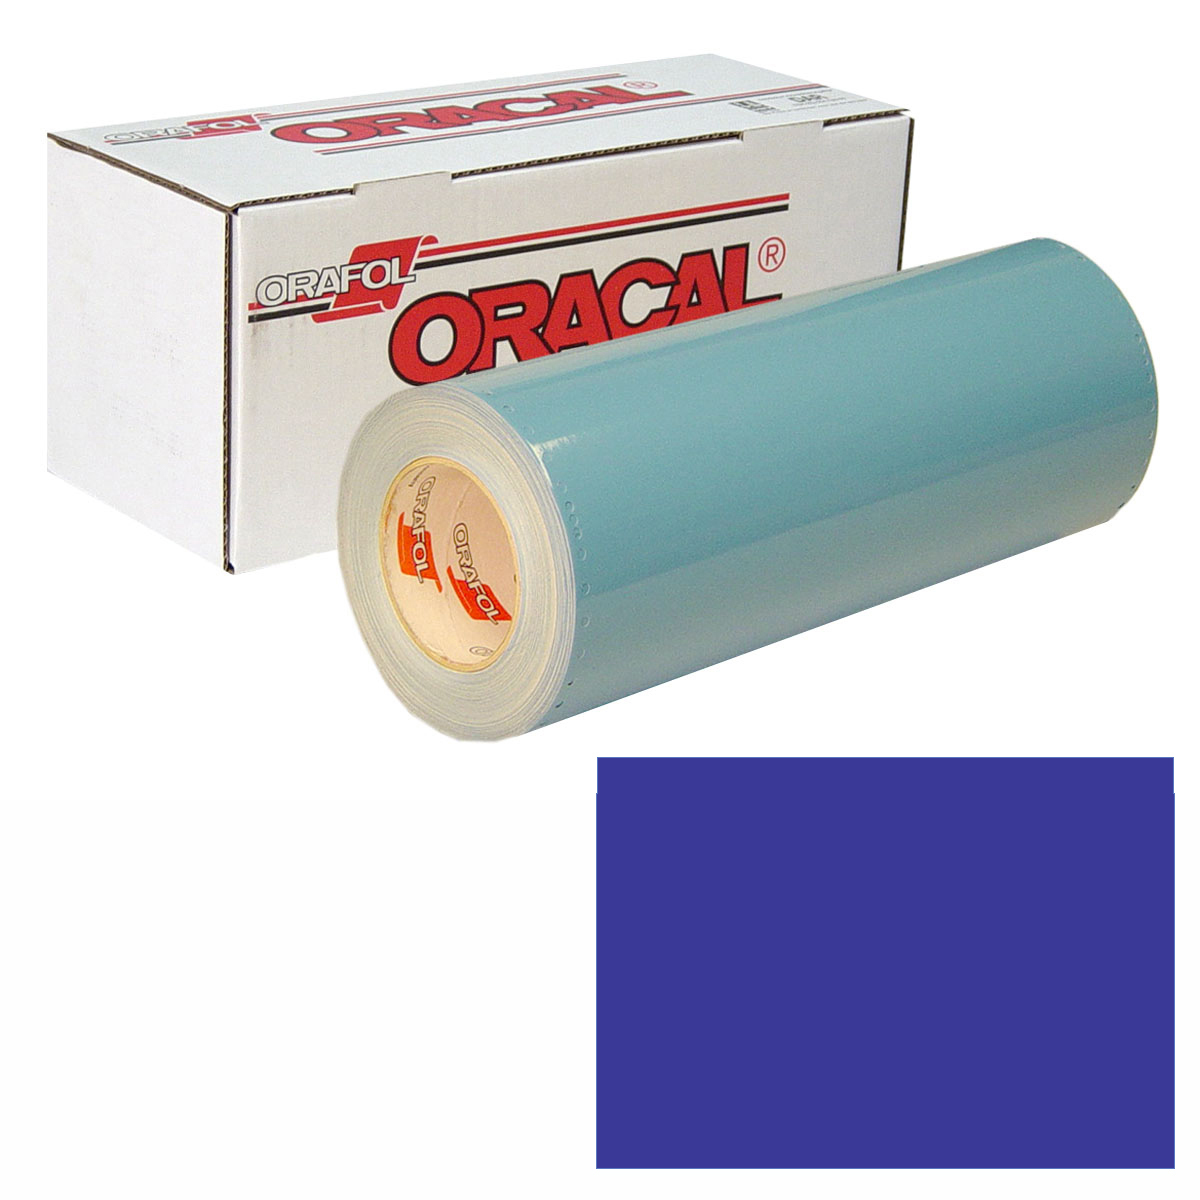 ORACAL 751 30in X 50yd 403 Light Violet